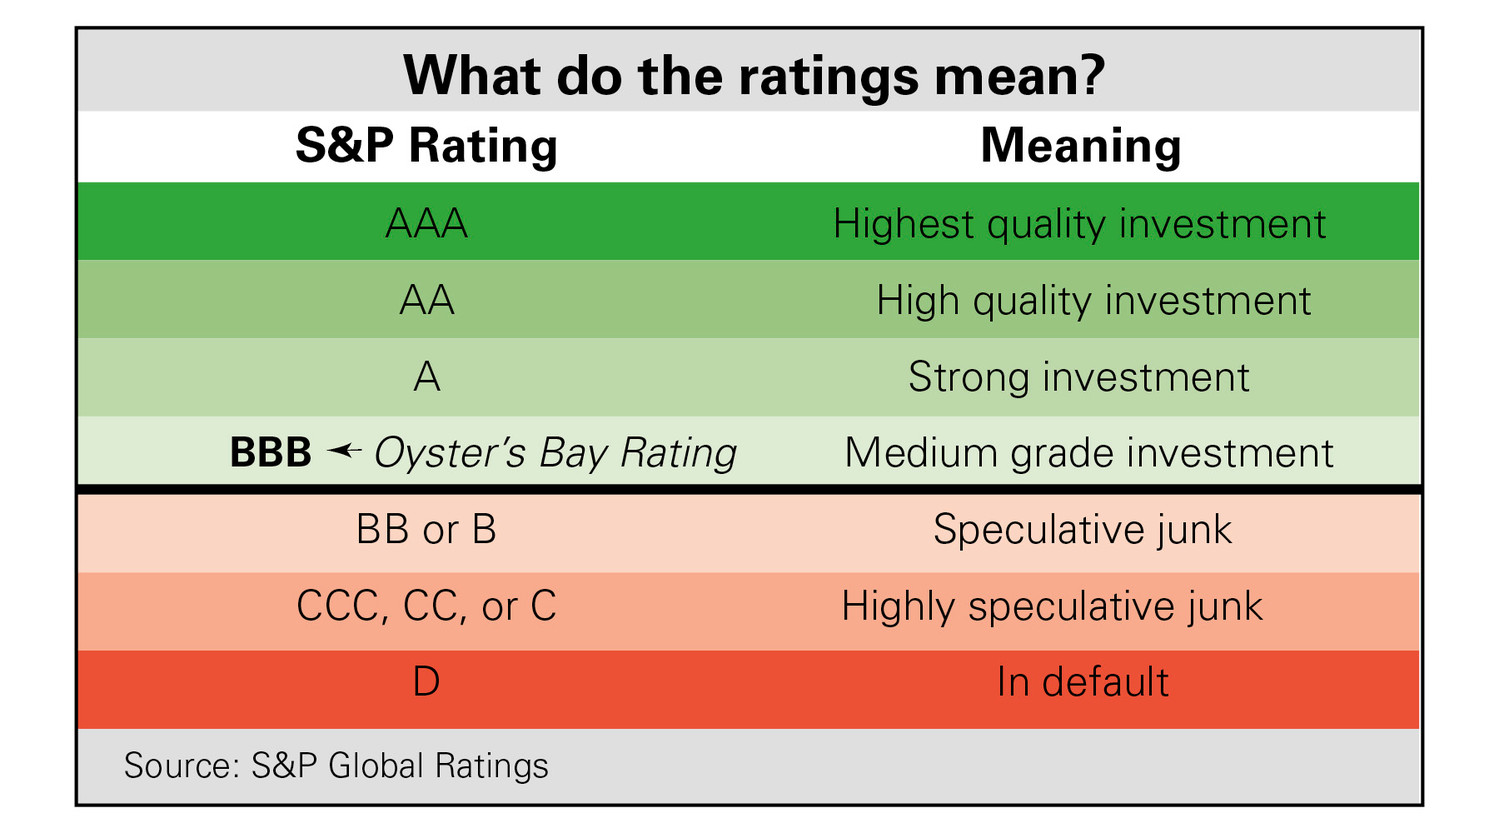 Oyster Bay was recently upgraded to medium grade investment status.